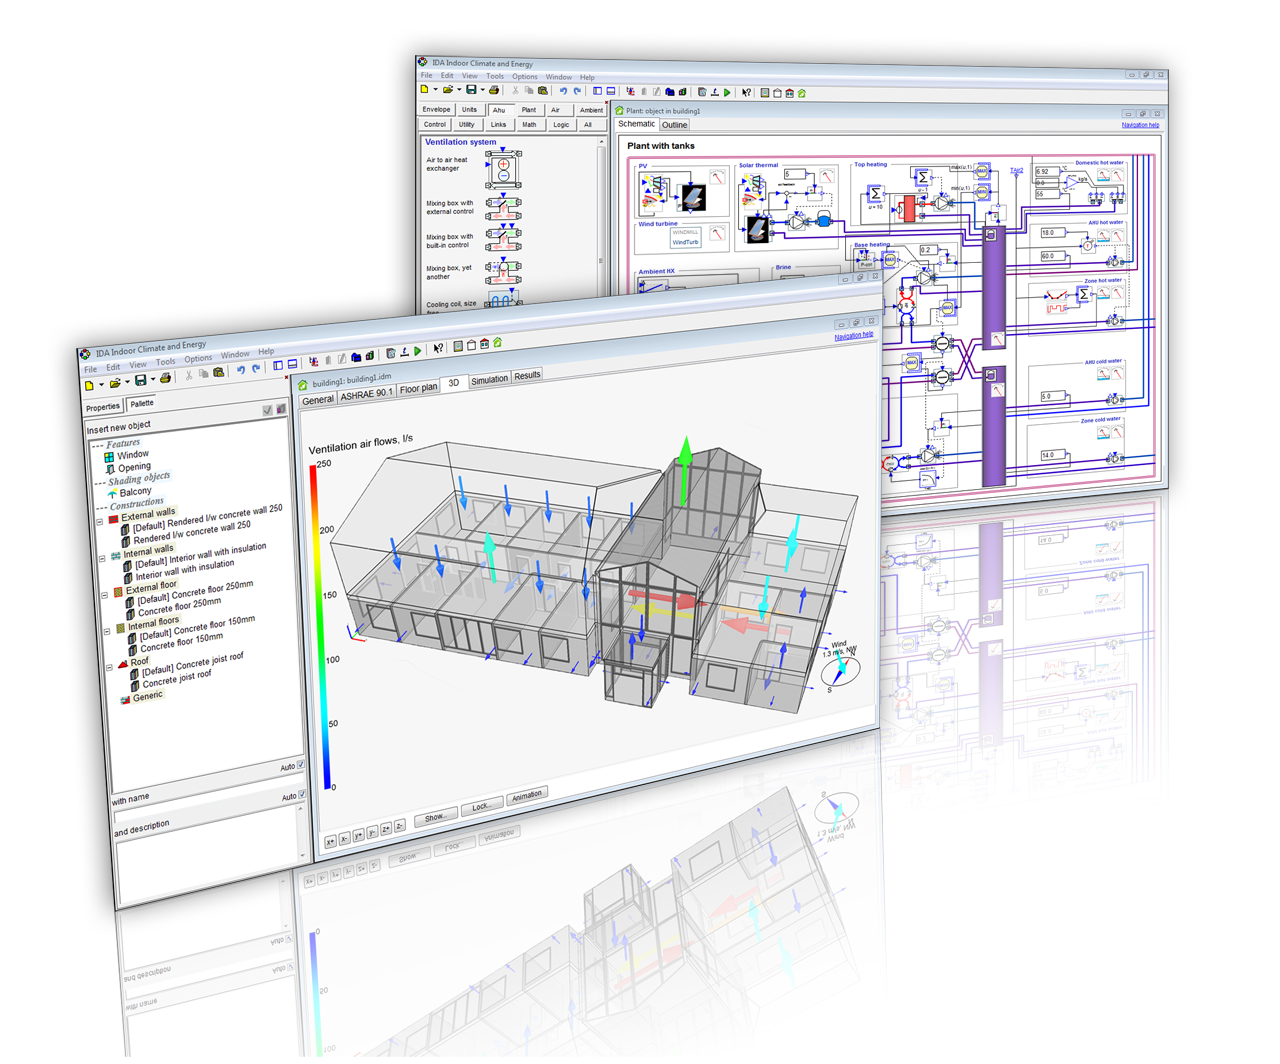 Building Performance Simulation Software With Focus On Early Stages